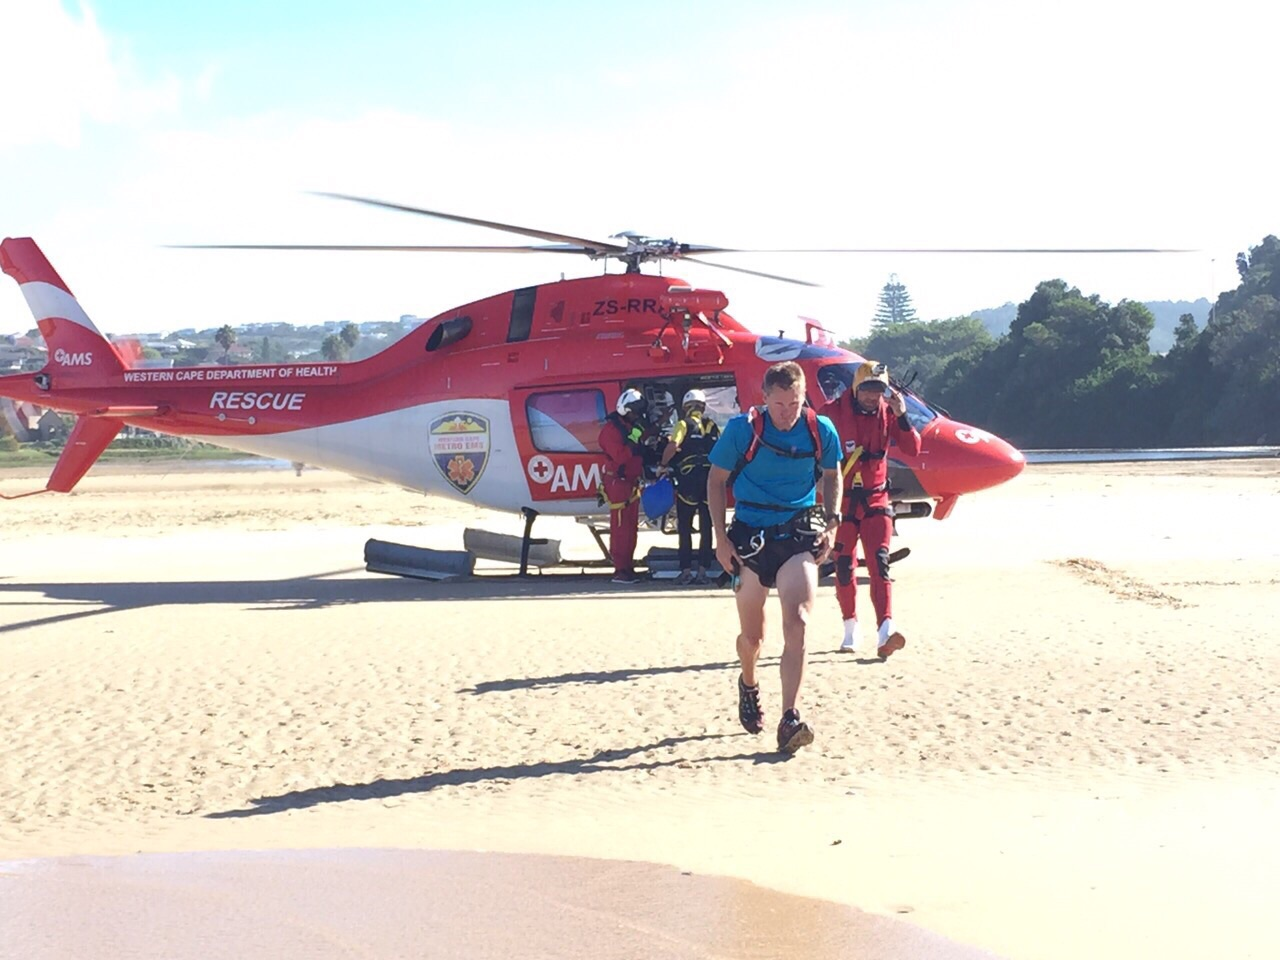 Laurent was airlifted to the Plettenberg Bay Sea Rescue station.